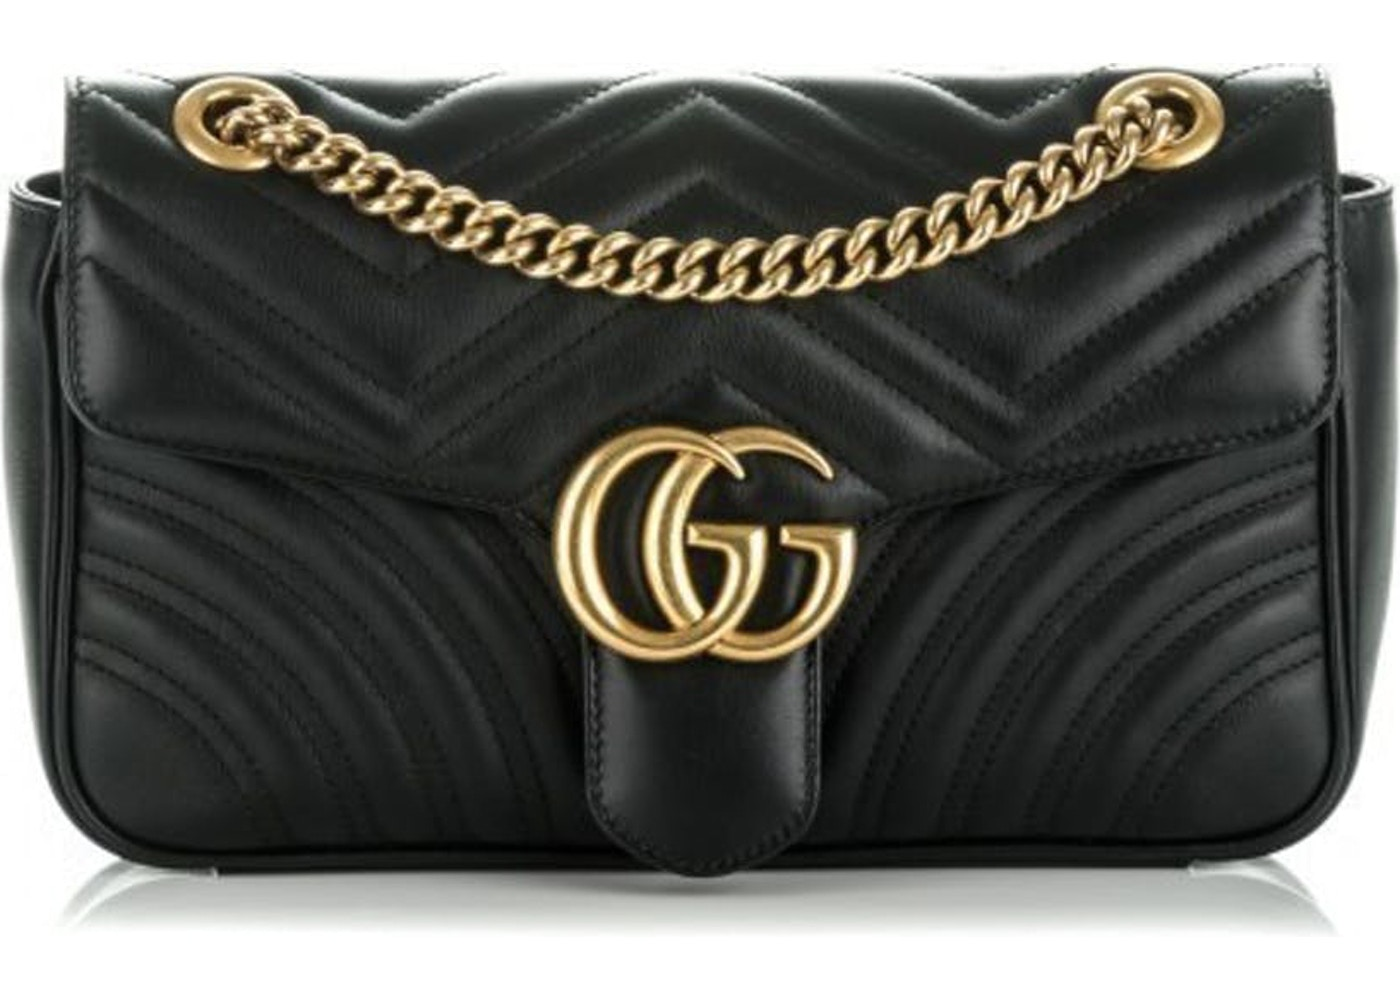 e265cbc29ba455 Bid. Get the Gucci Marmont Shoulder Matelasse Small Black ...